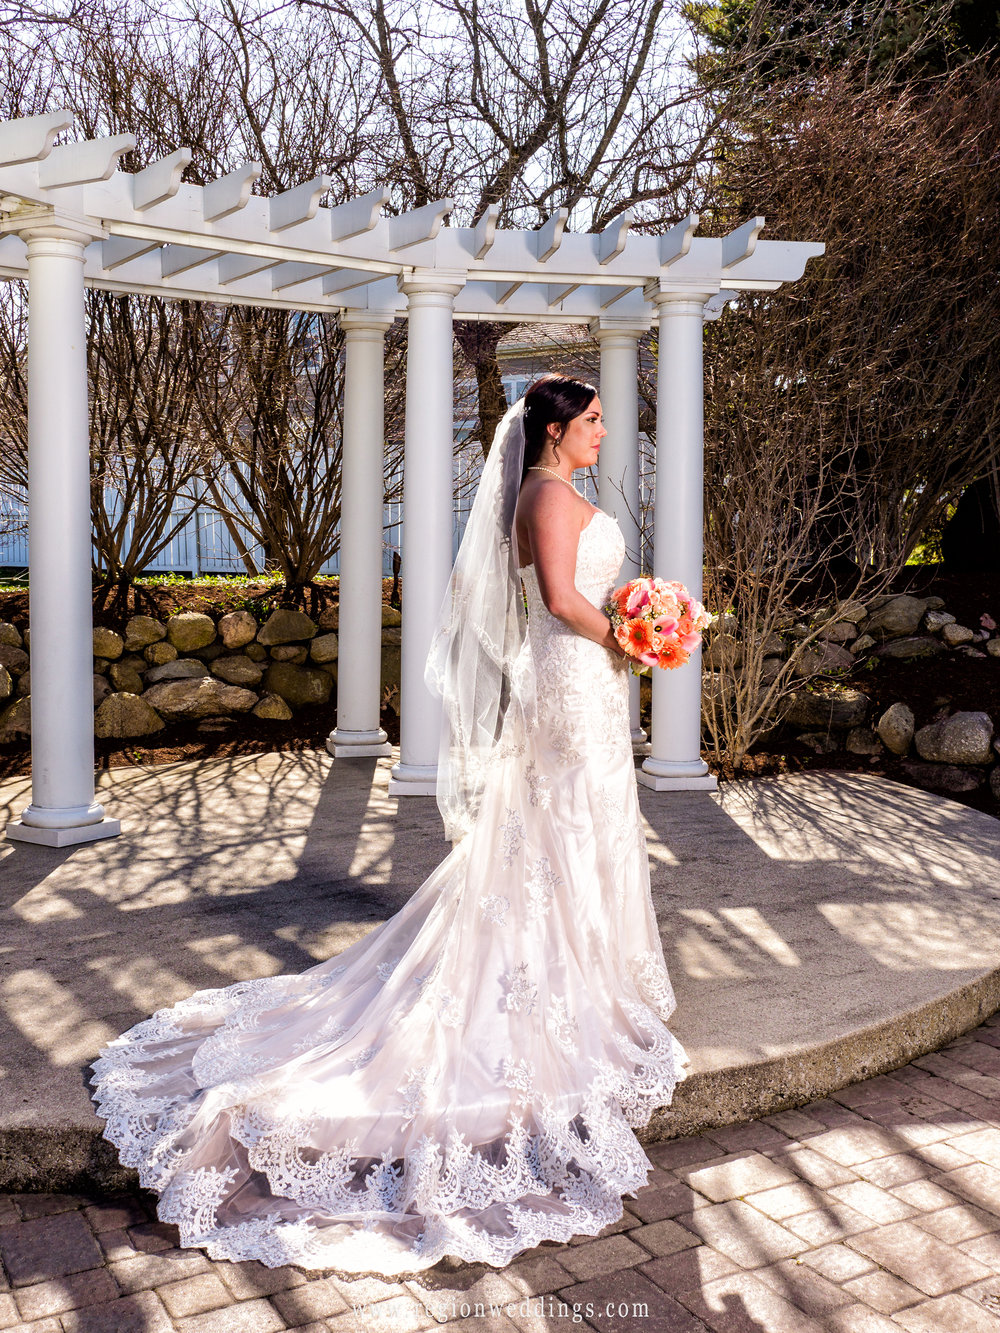 The beautiful bride in front of the gazebo at Aberdeen.